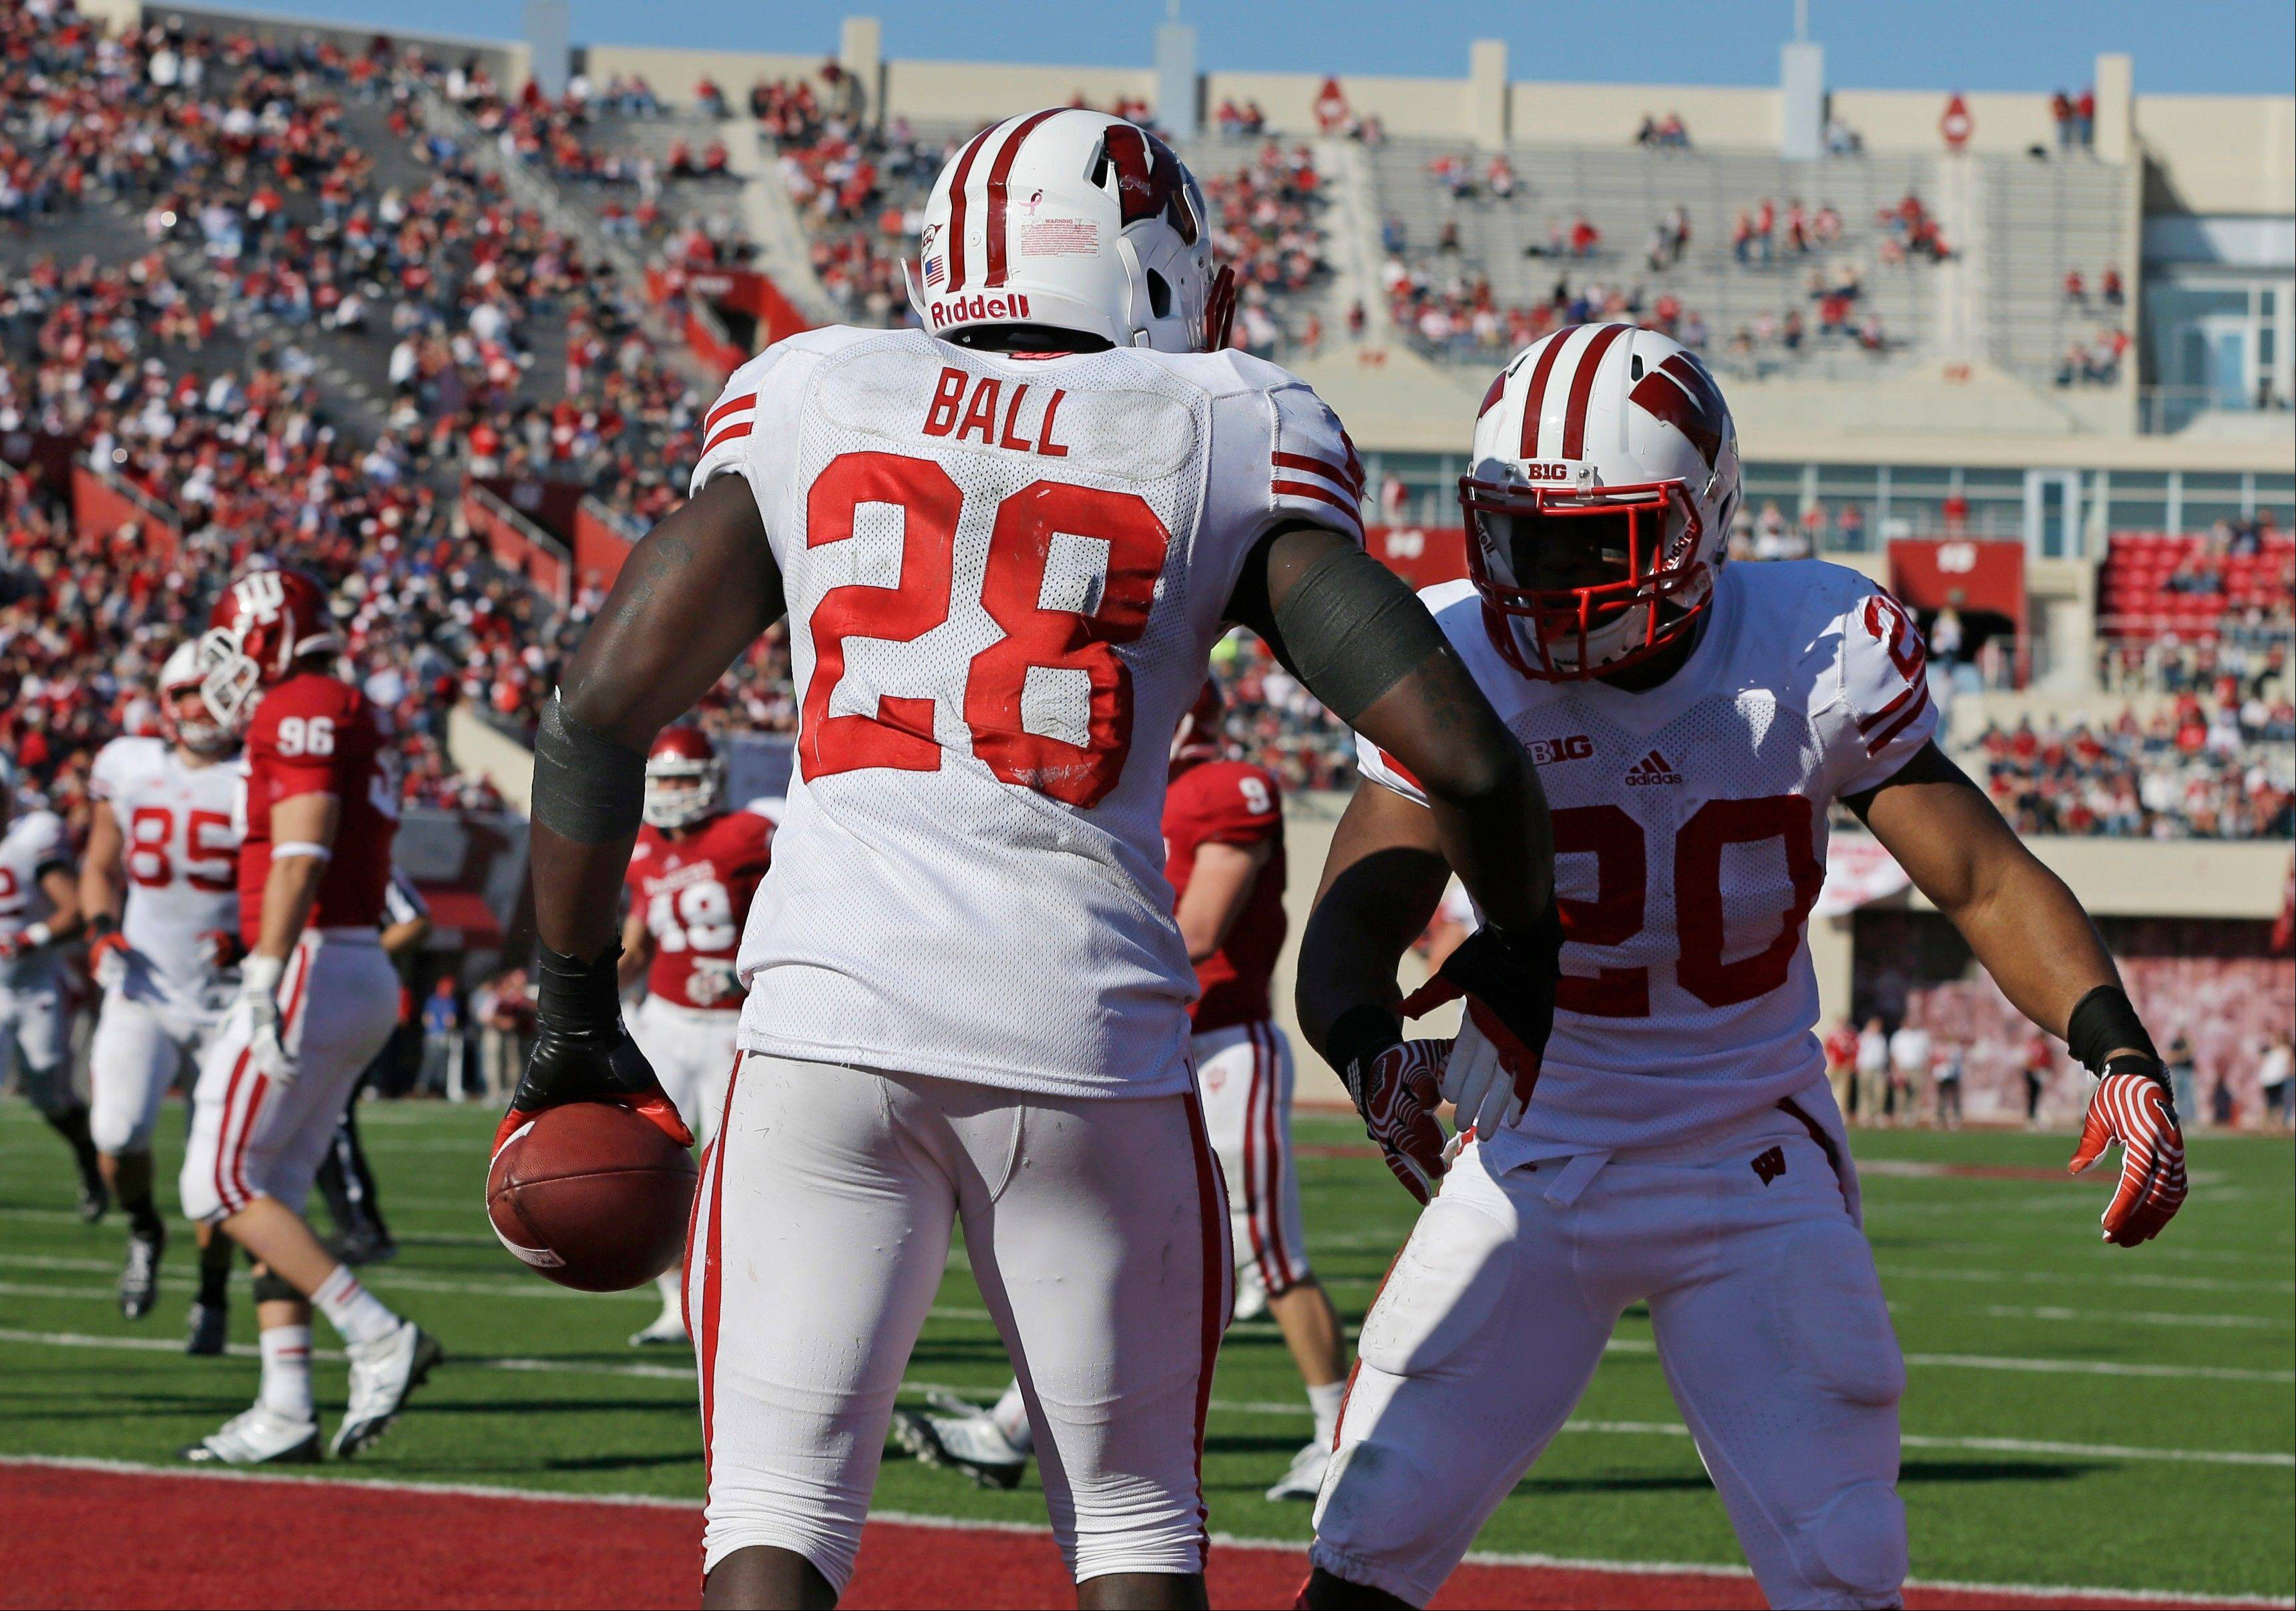 Wisconsin's Montee Ball (28) and James White celebrates after Ball ran 49-yards for a touchdown Saturday during the second half against Indiana in Bloomington, Ind.